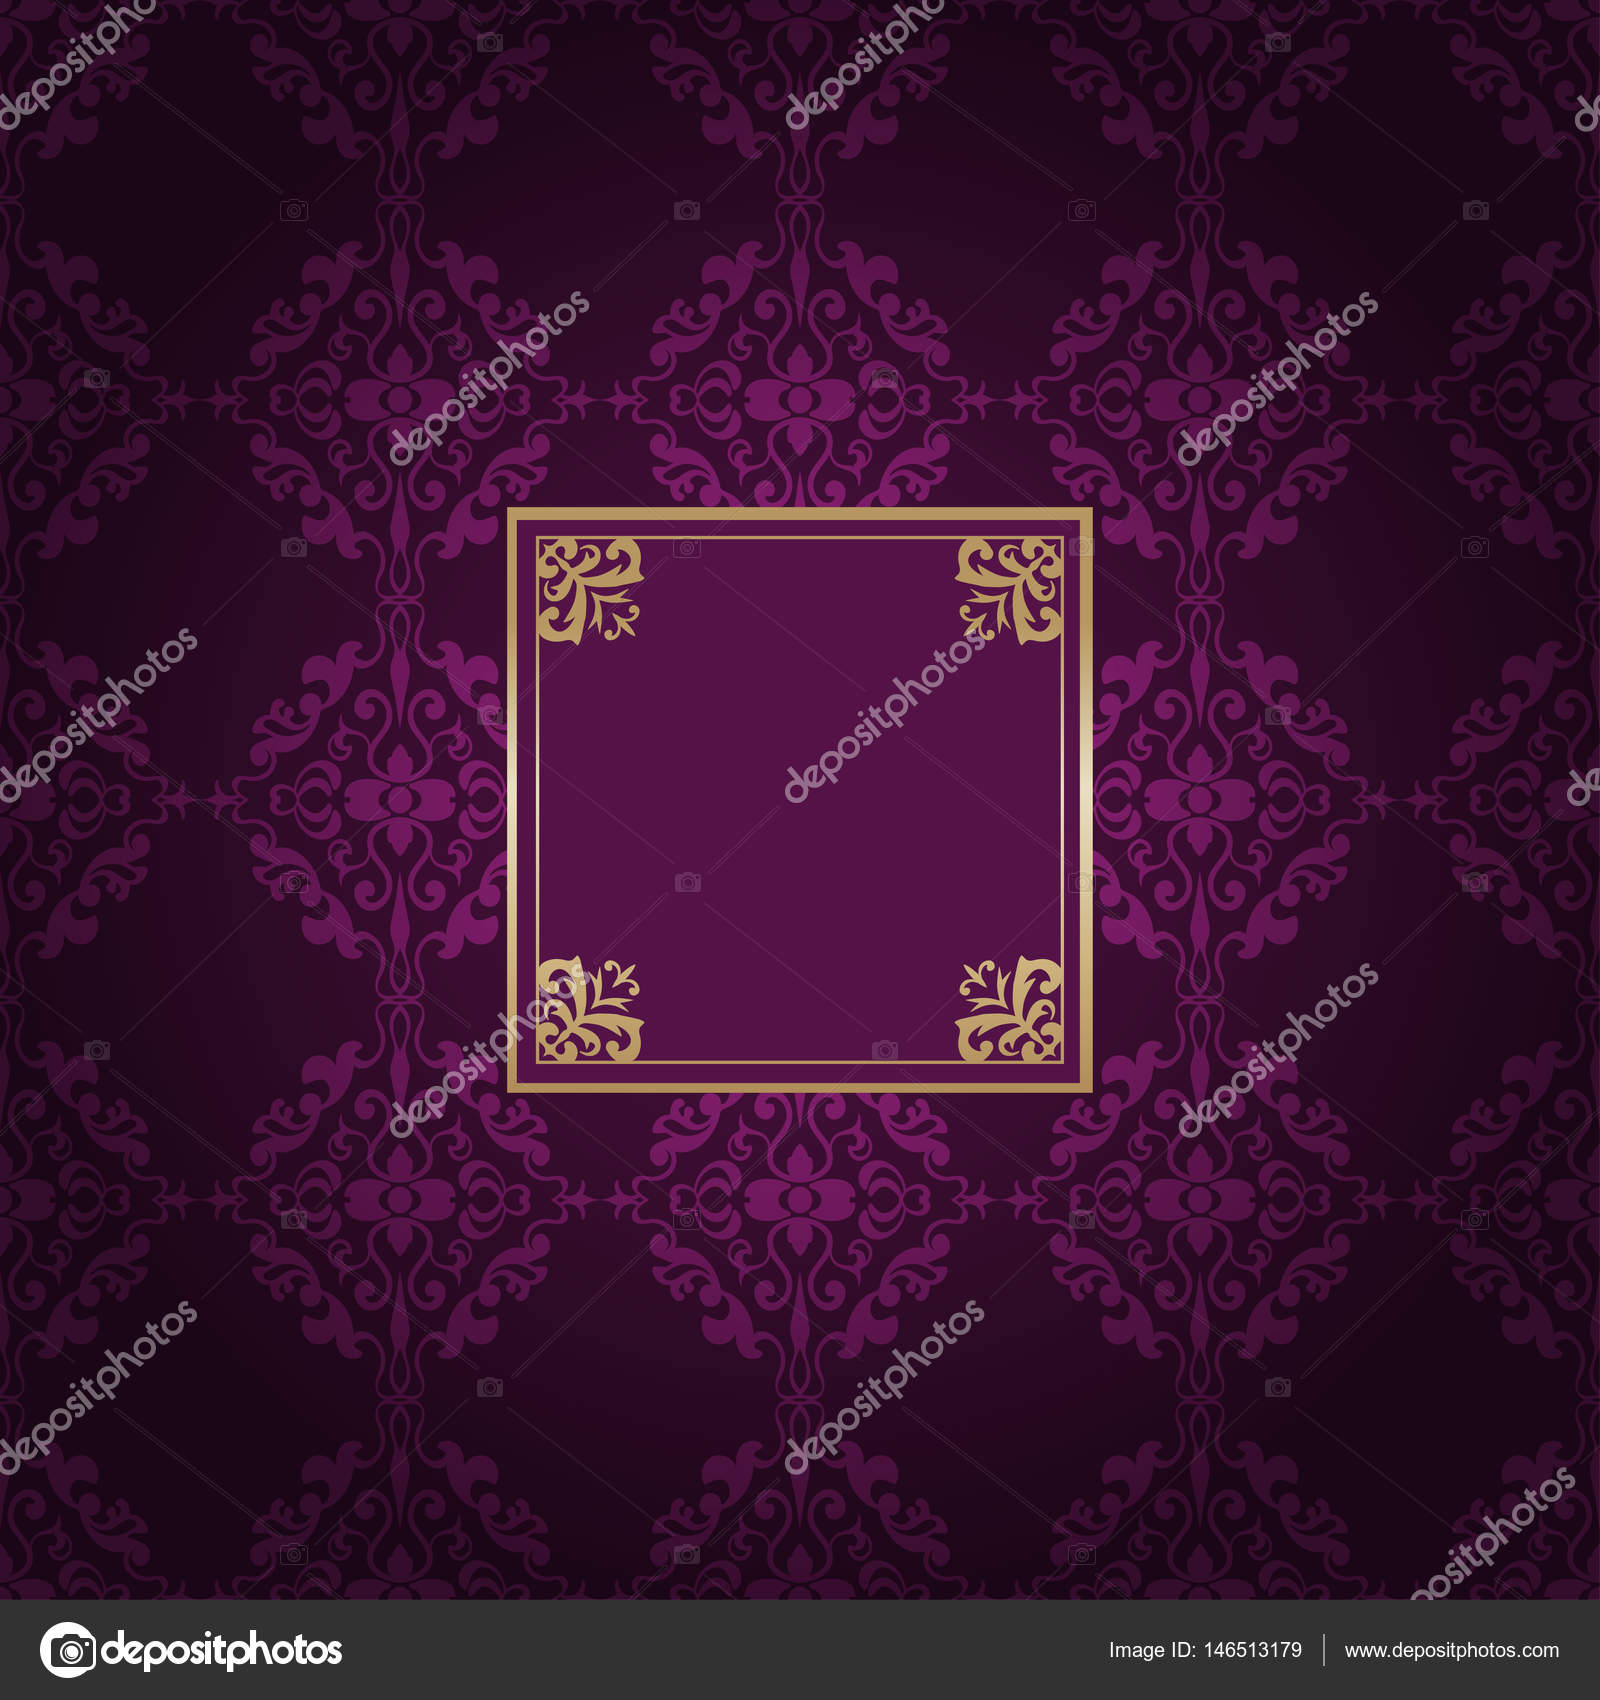 480a4ee71ad9 Vintage golden frame on colored ornamental luxury background — Stock Vector